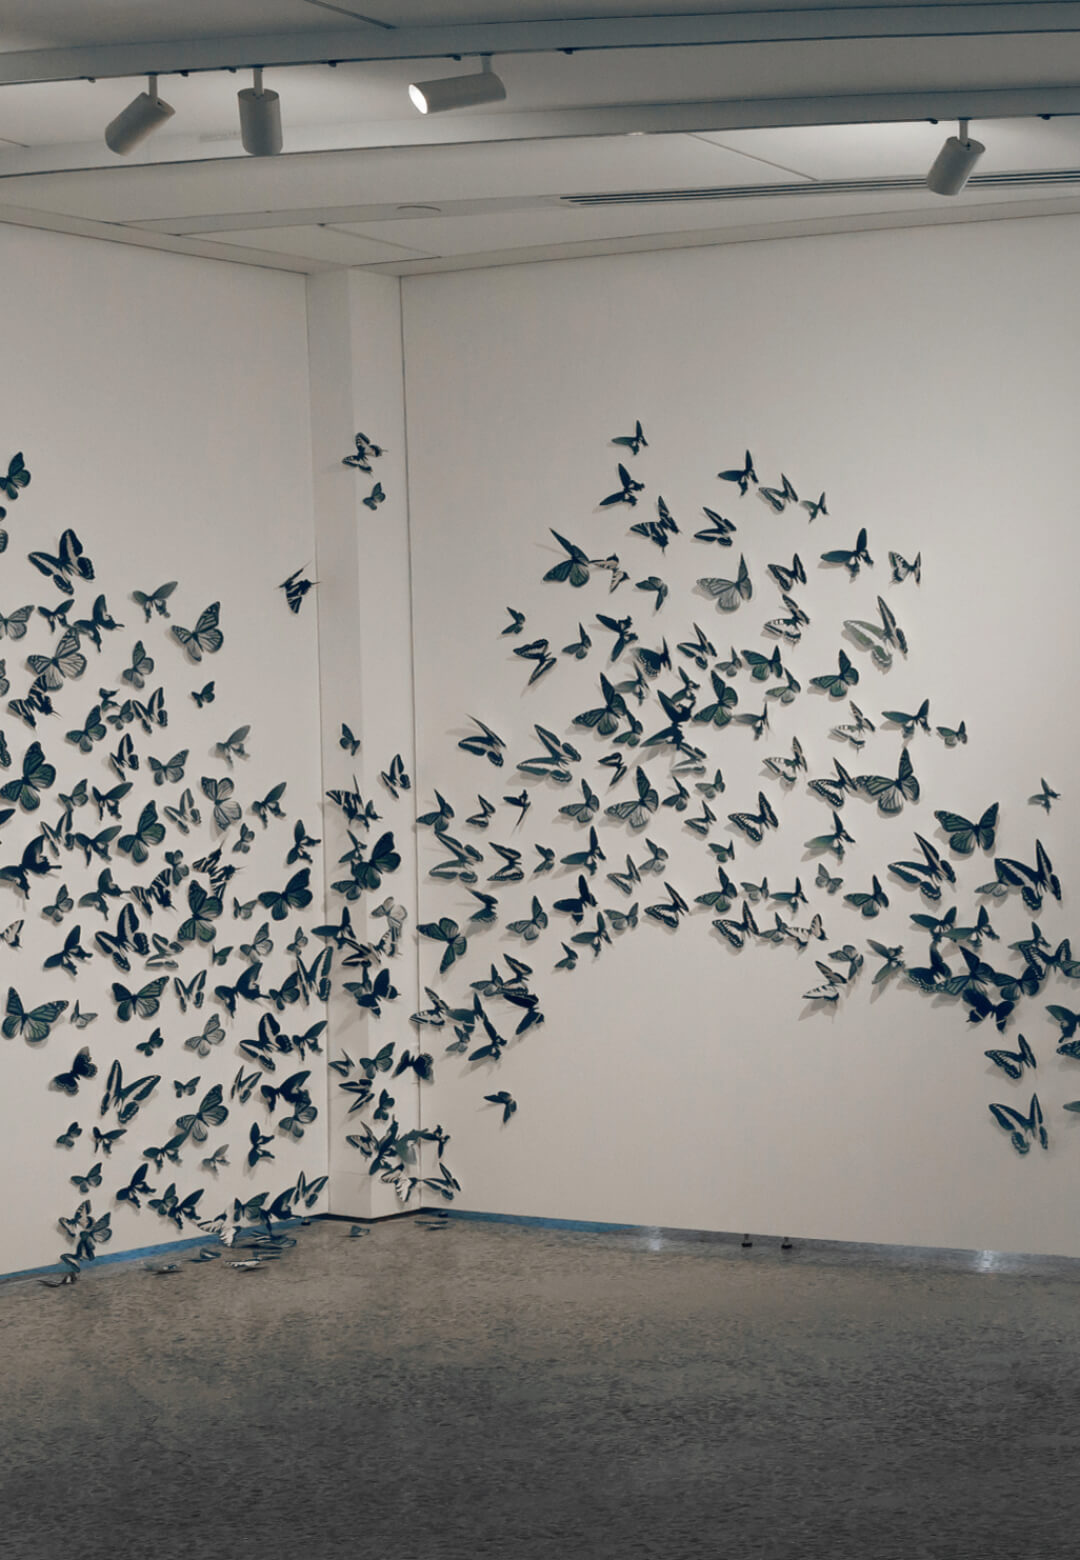 Murmuration and The Swarm | Leah Sobsey | STIRworld